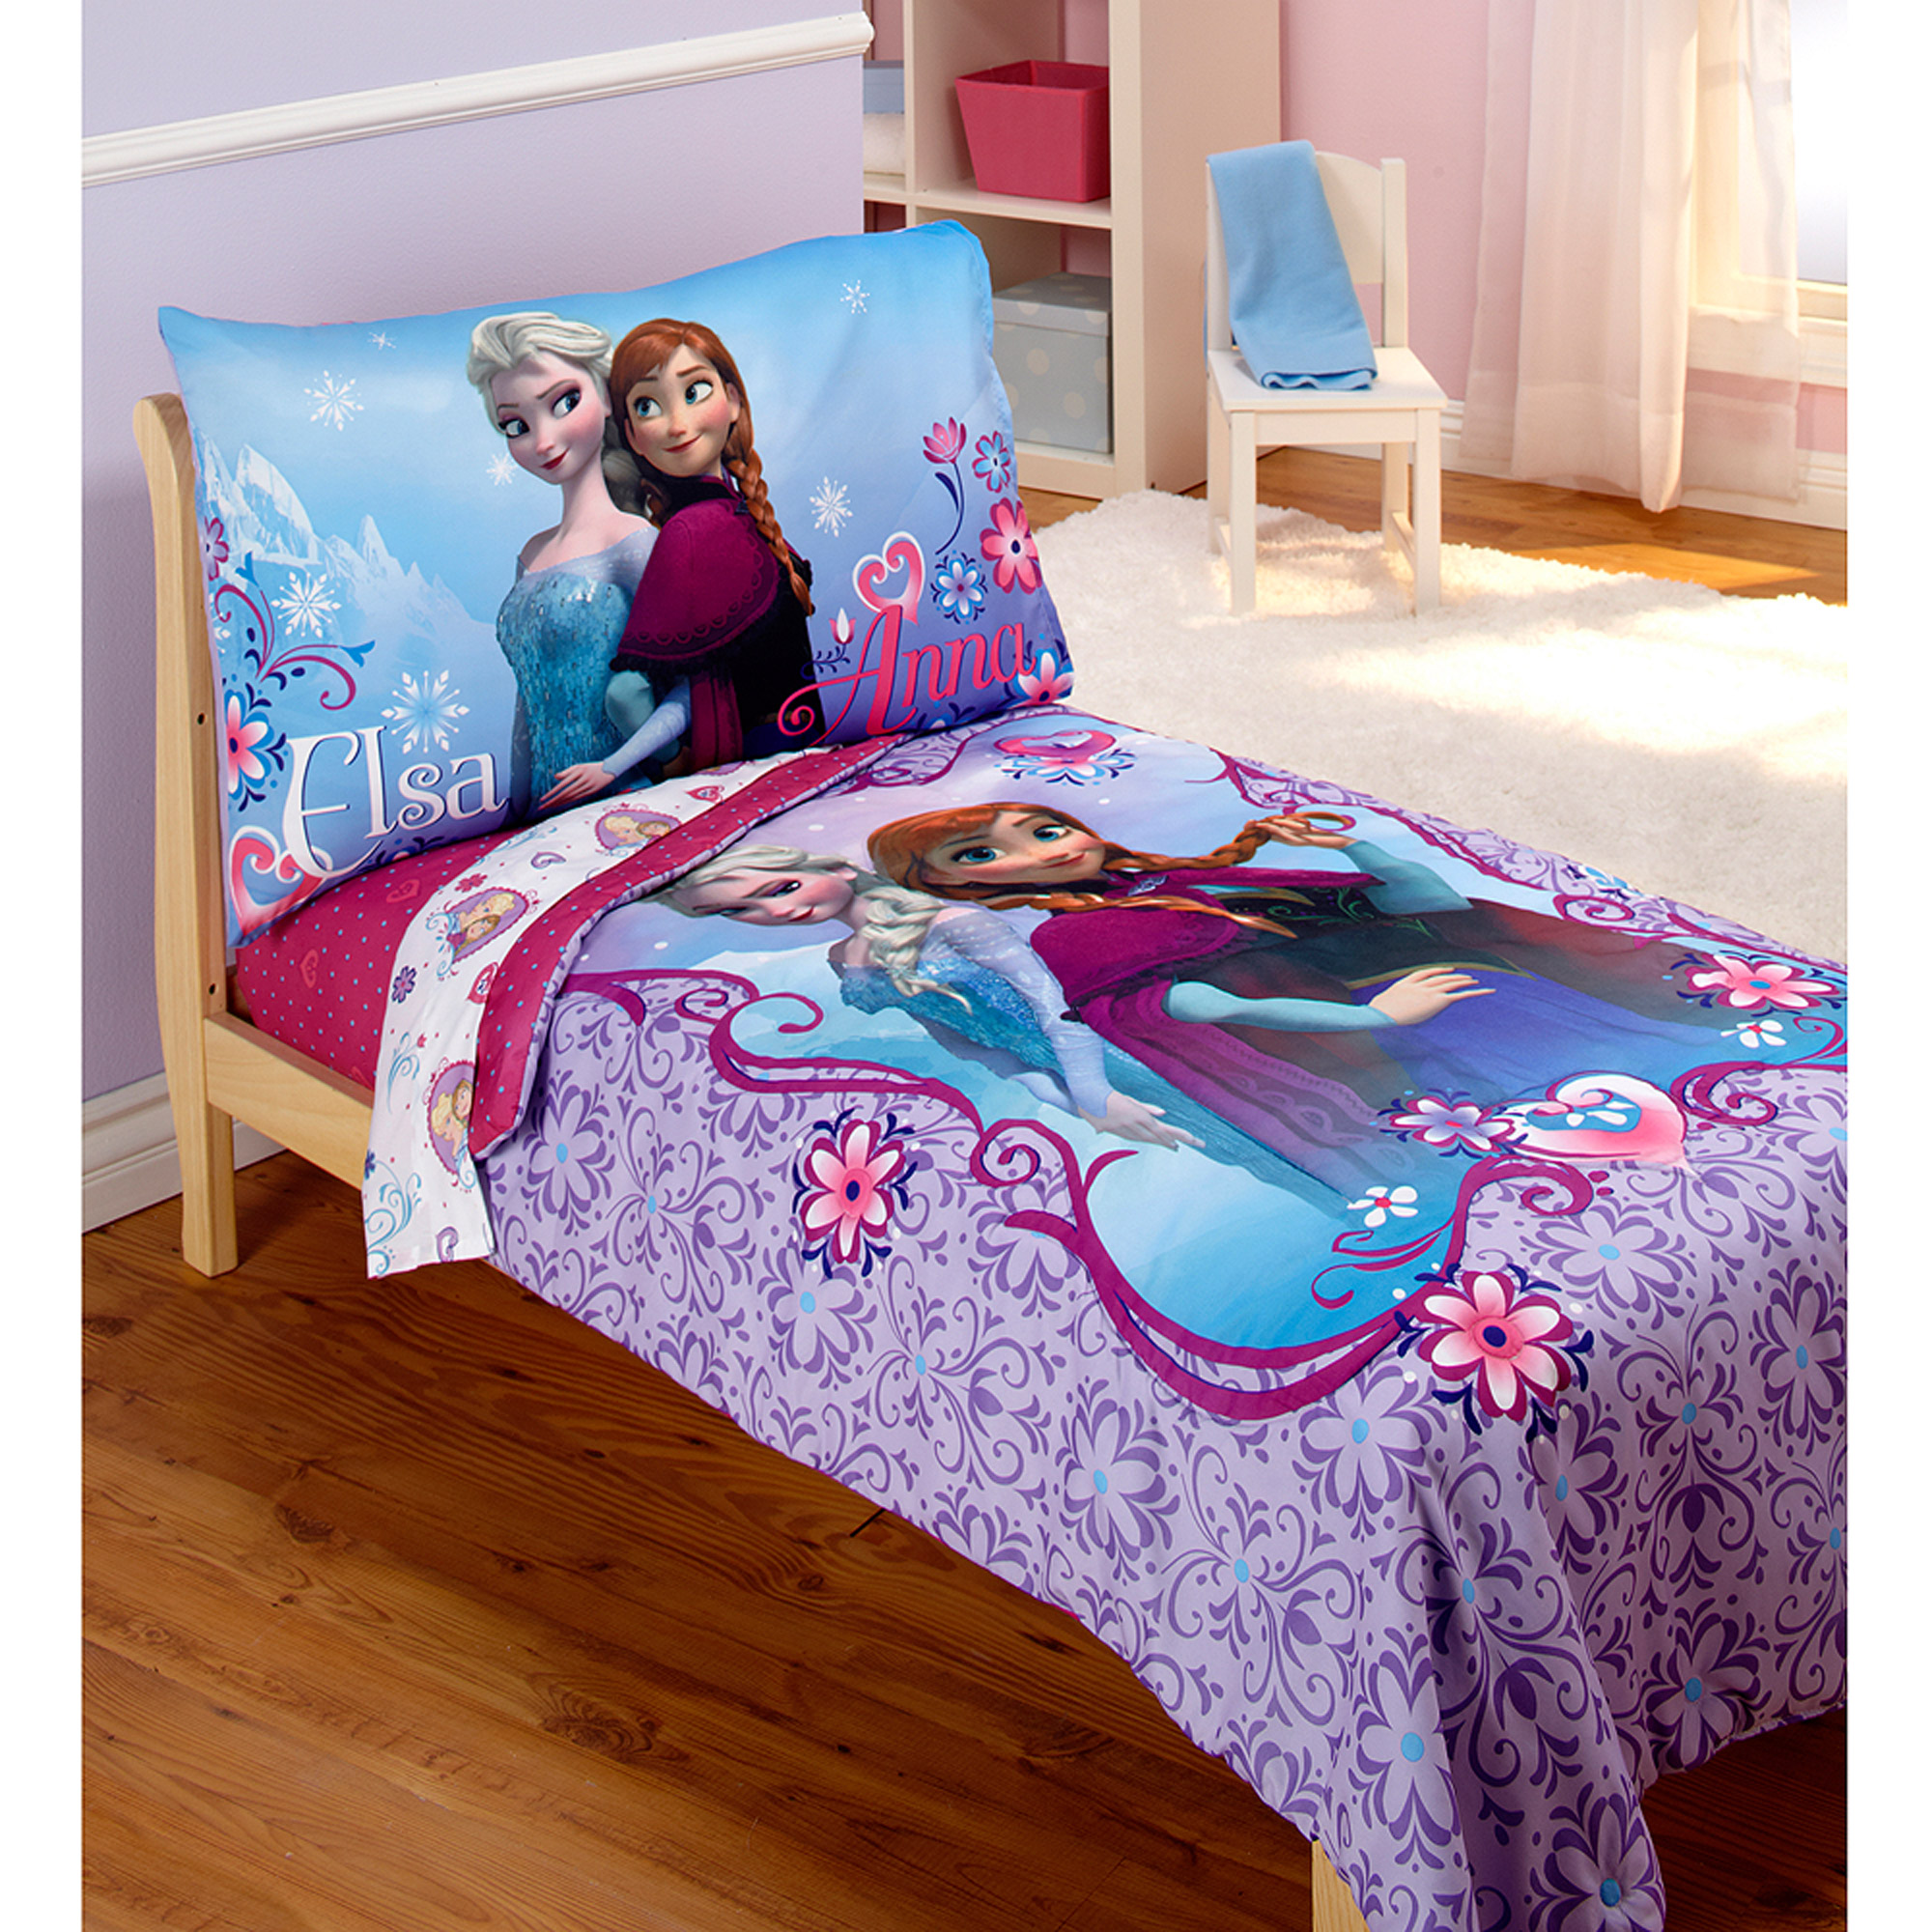 Toy Story Bedding | Bubble Guppies Bed Set | Bubble Guppies Bedding